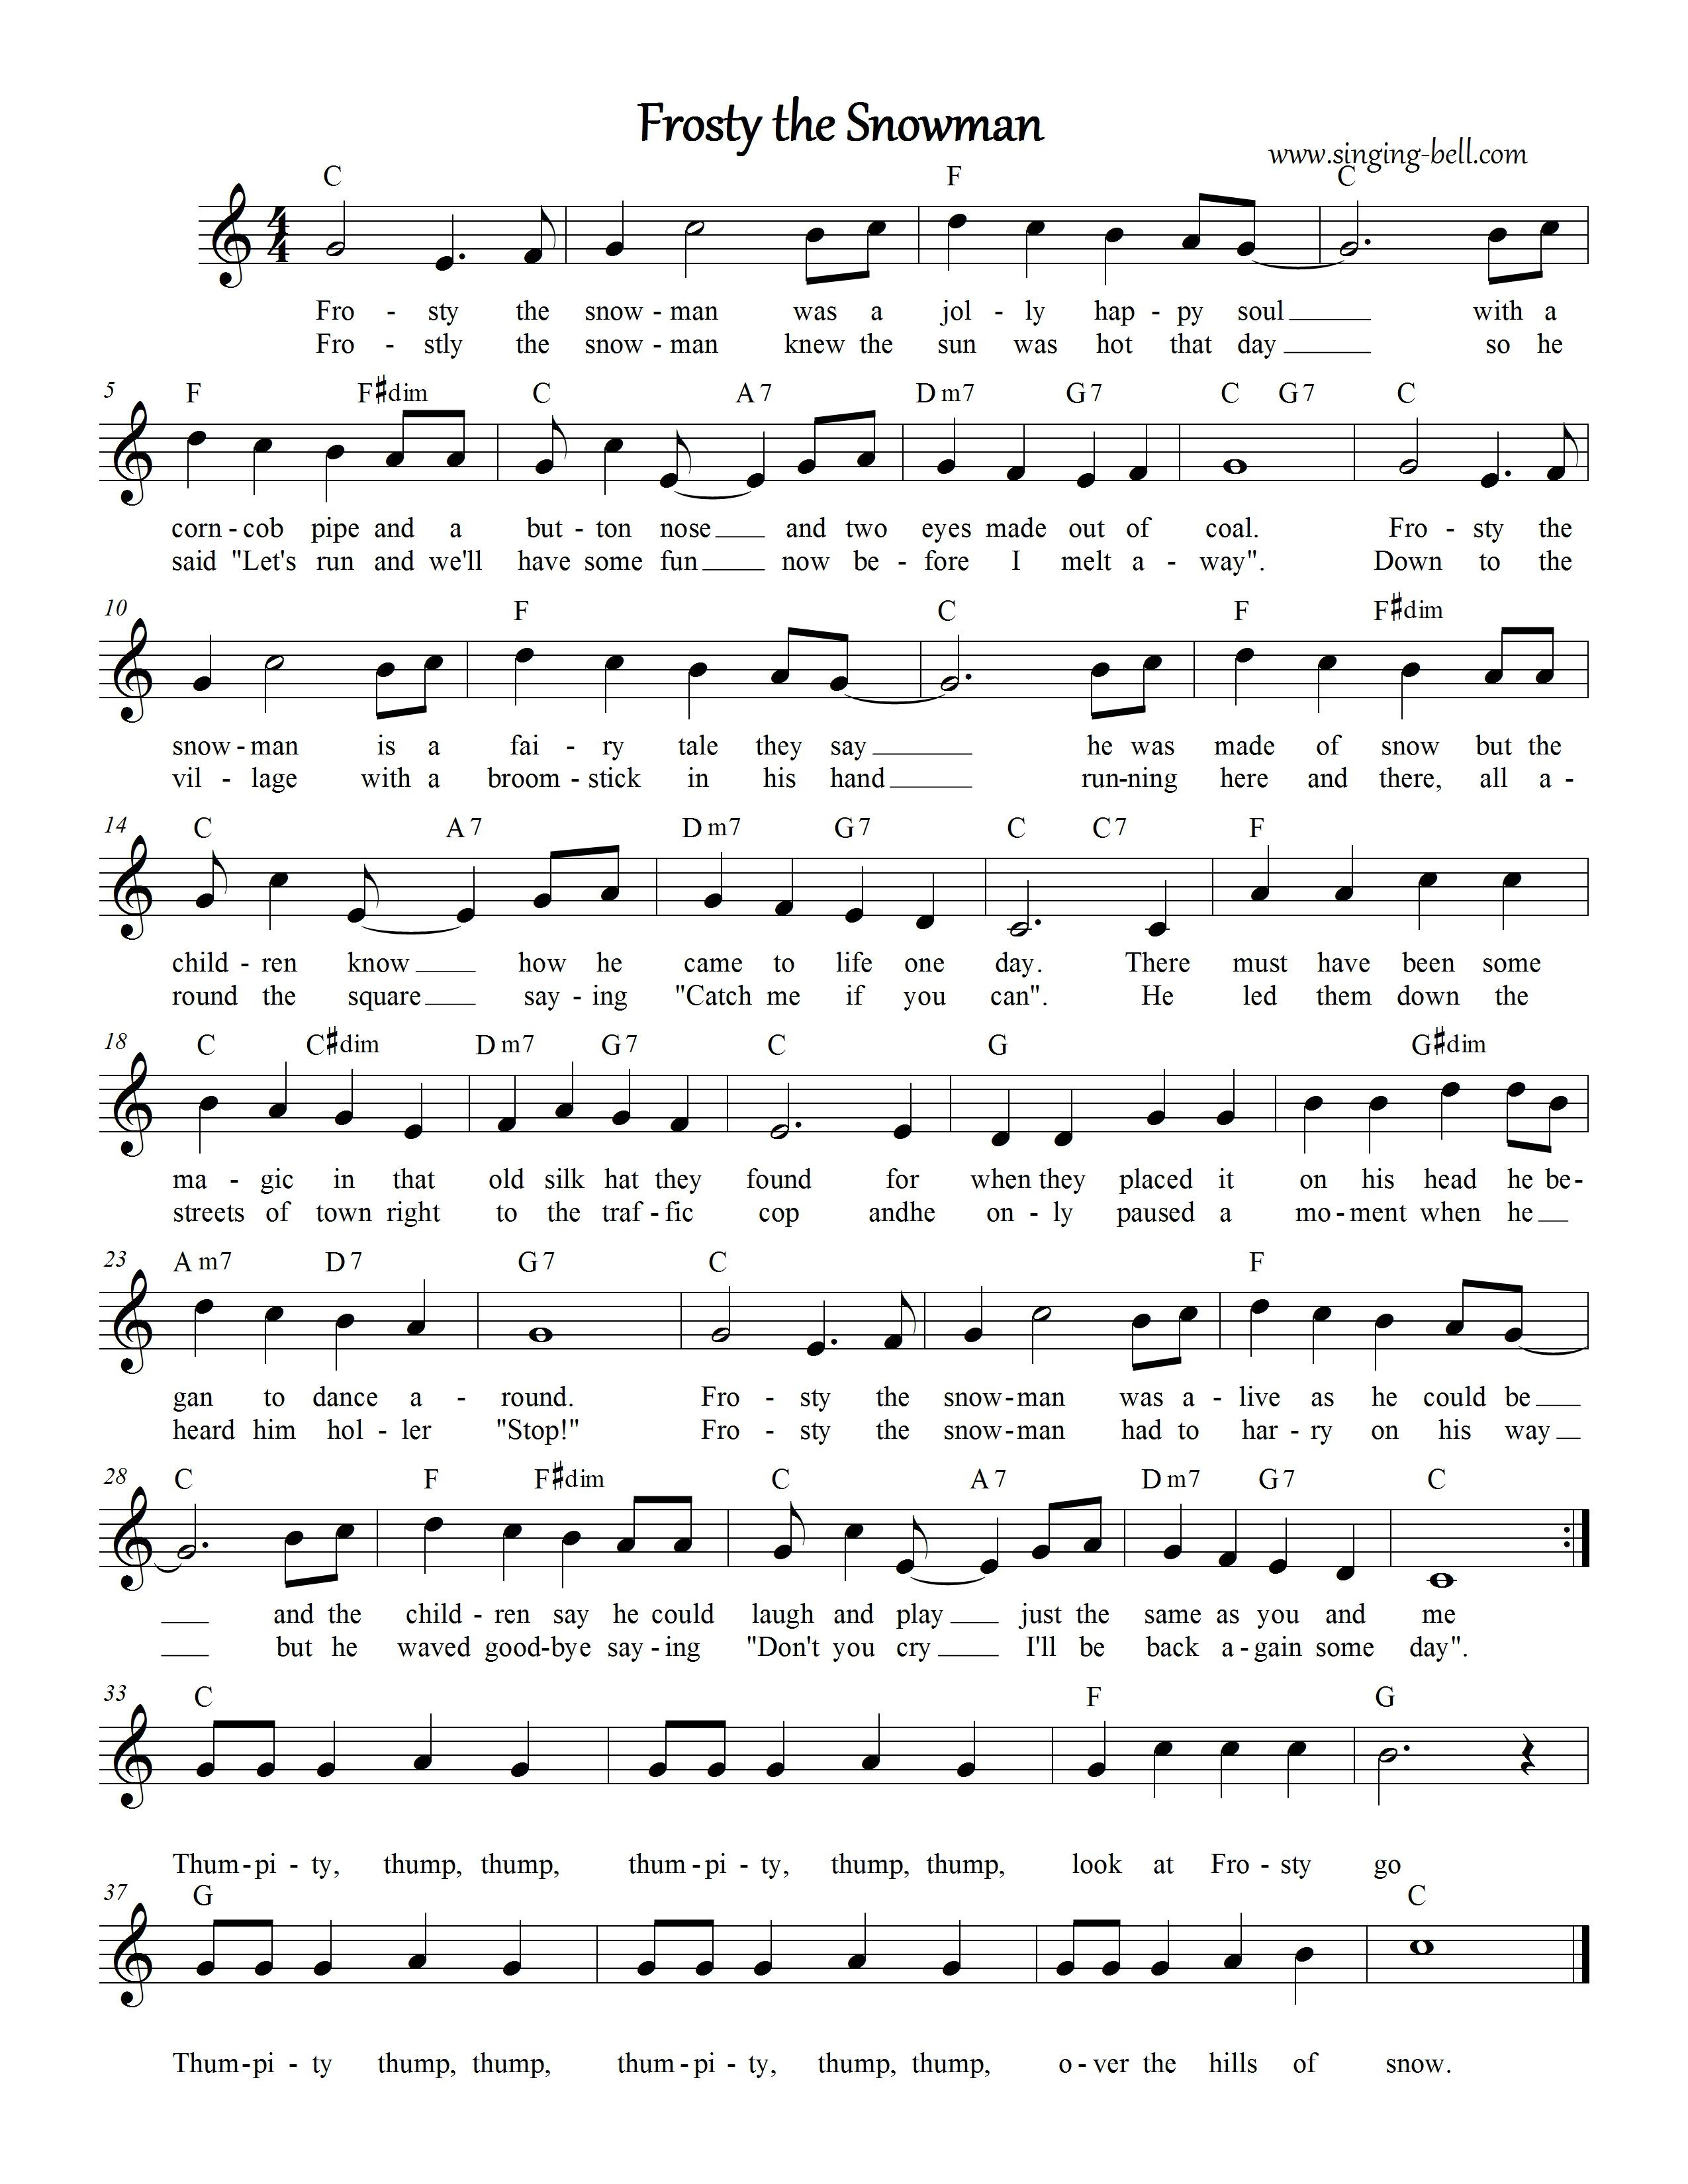 Frosty The Snowman | Free Christmas Carols Karaoke - Free Printable Frosty The Snowman Sheet Music